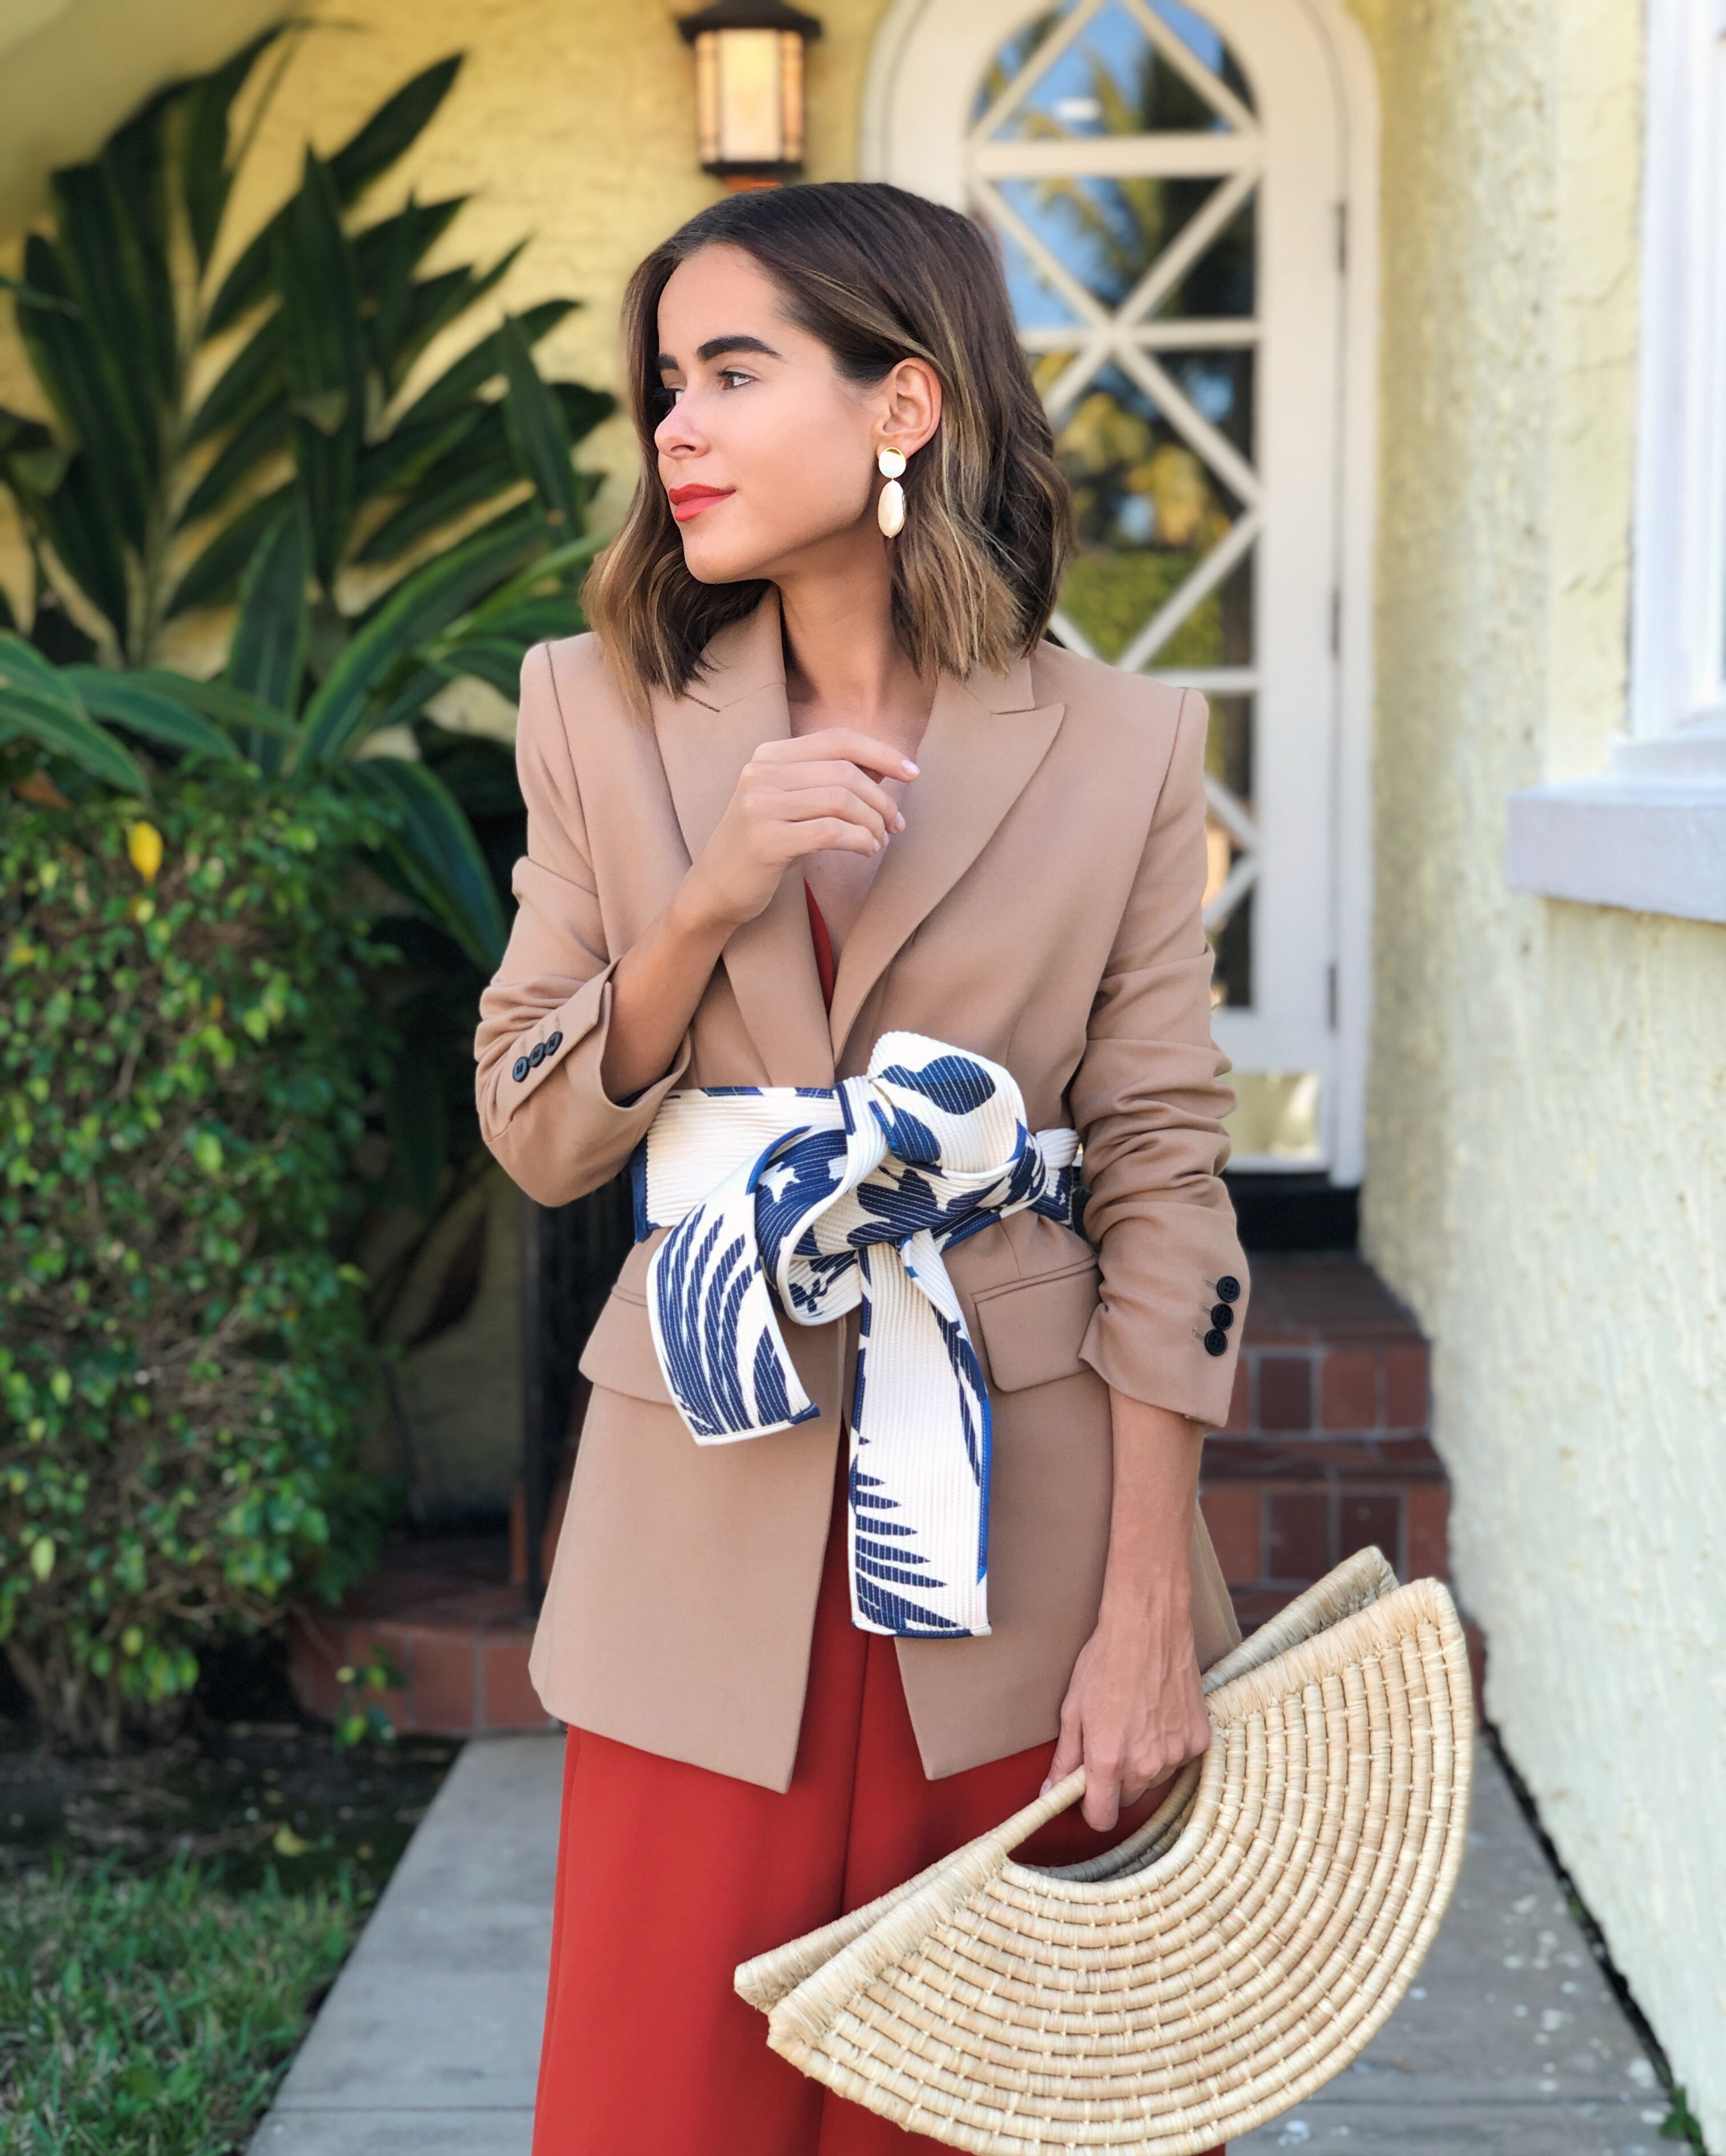 Fashion Blogger Stephanie Hill wears ootd featuring A.L.C dress, Maje blazer, Johanna Ortiz belt and more